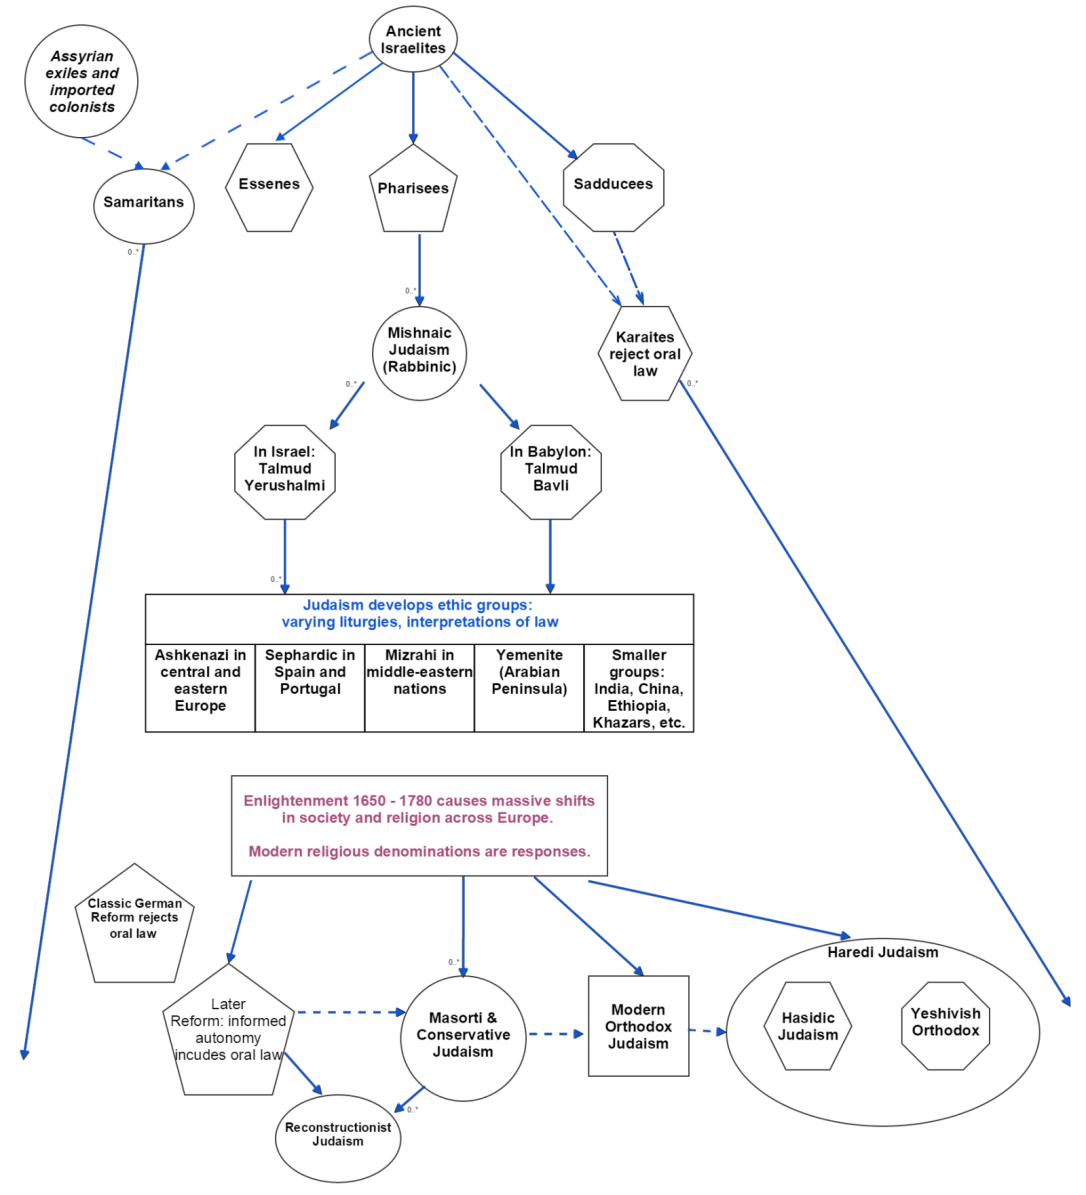 small resolution of the judaism family tree created by robert kaiser from merrimack valley havurah